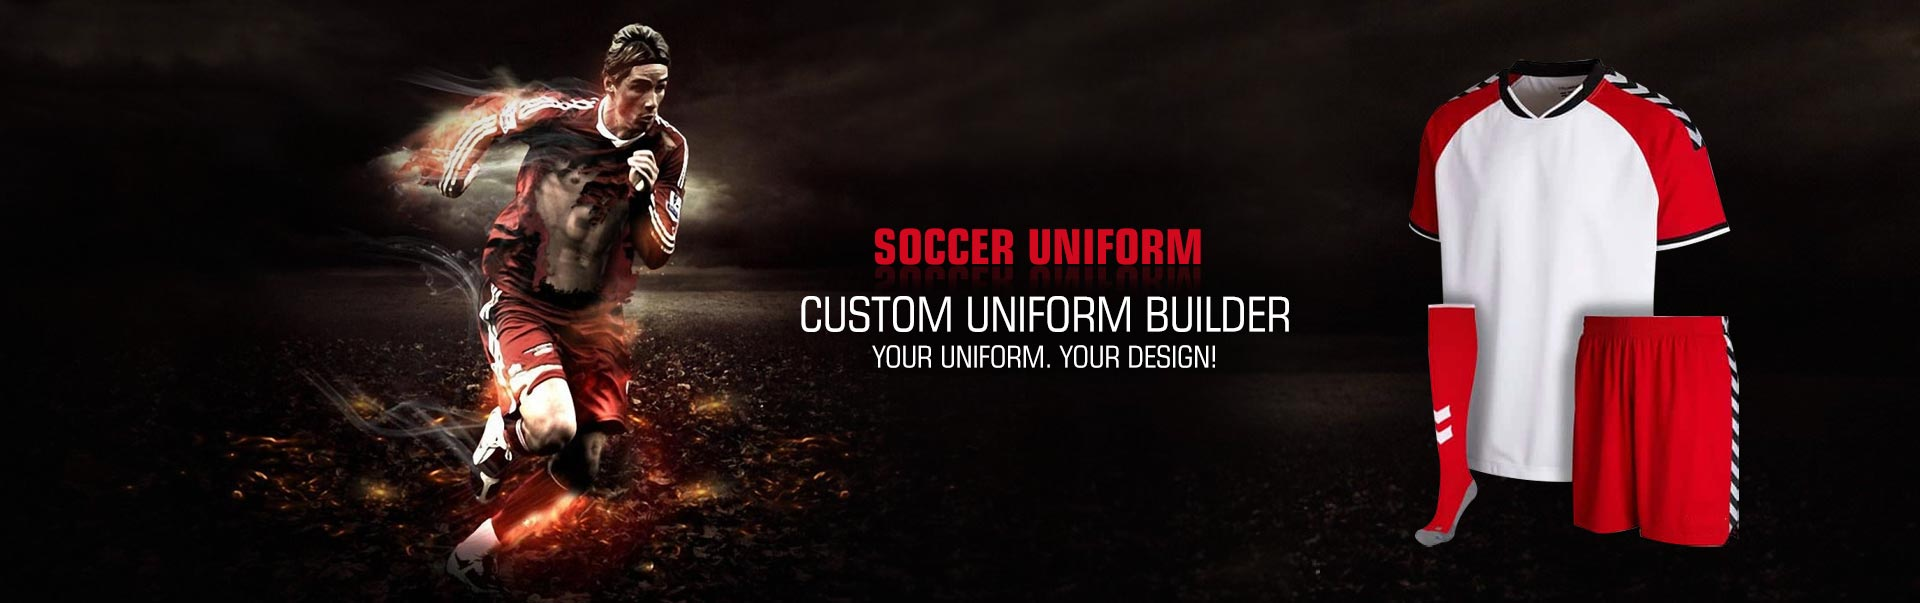 Soccer Uniform Wholesaler, Suppliers in Columbia